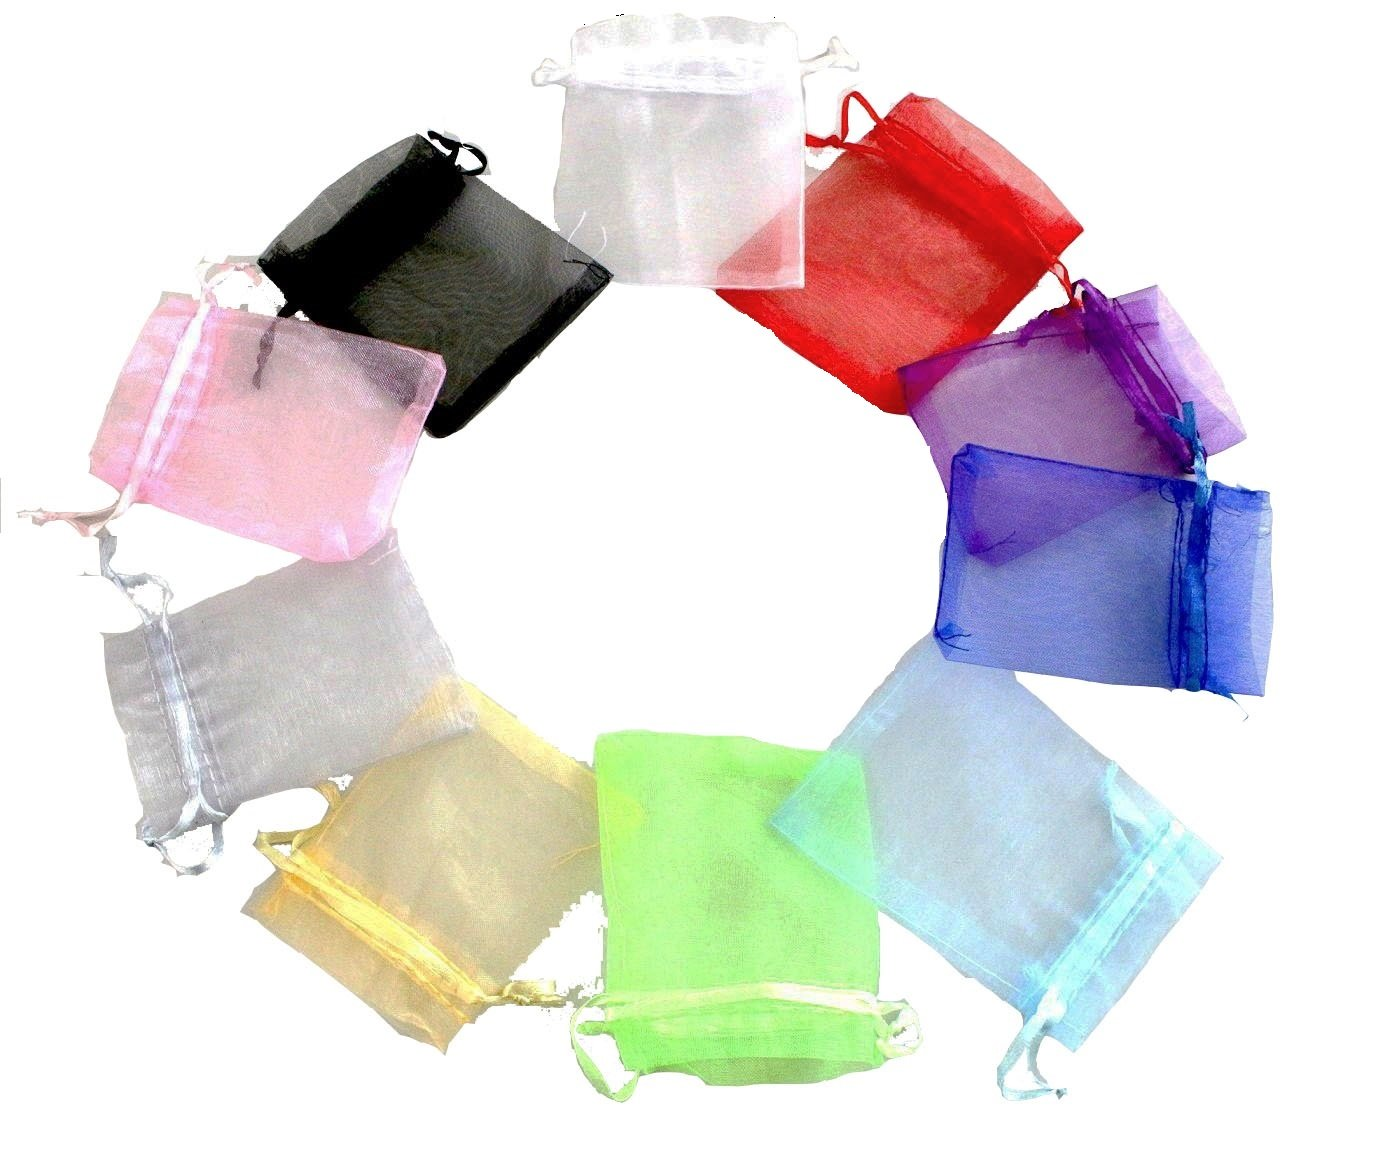 A& S Creavention Organza Mixed Colors Jewelry Pouch Bags Display bags 10 Colors 100pcs (3x4 Inches)